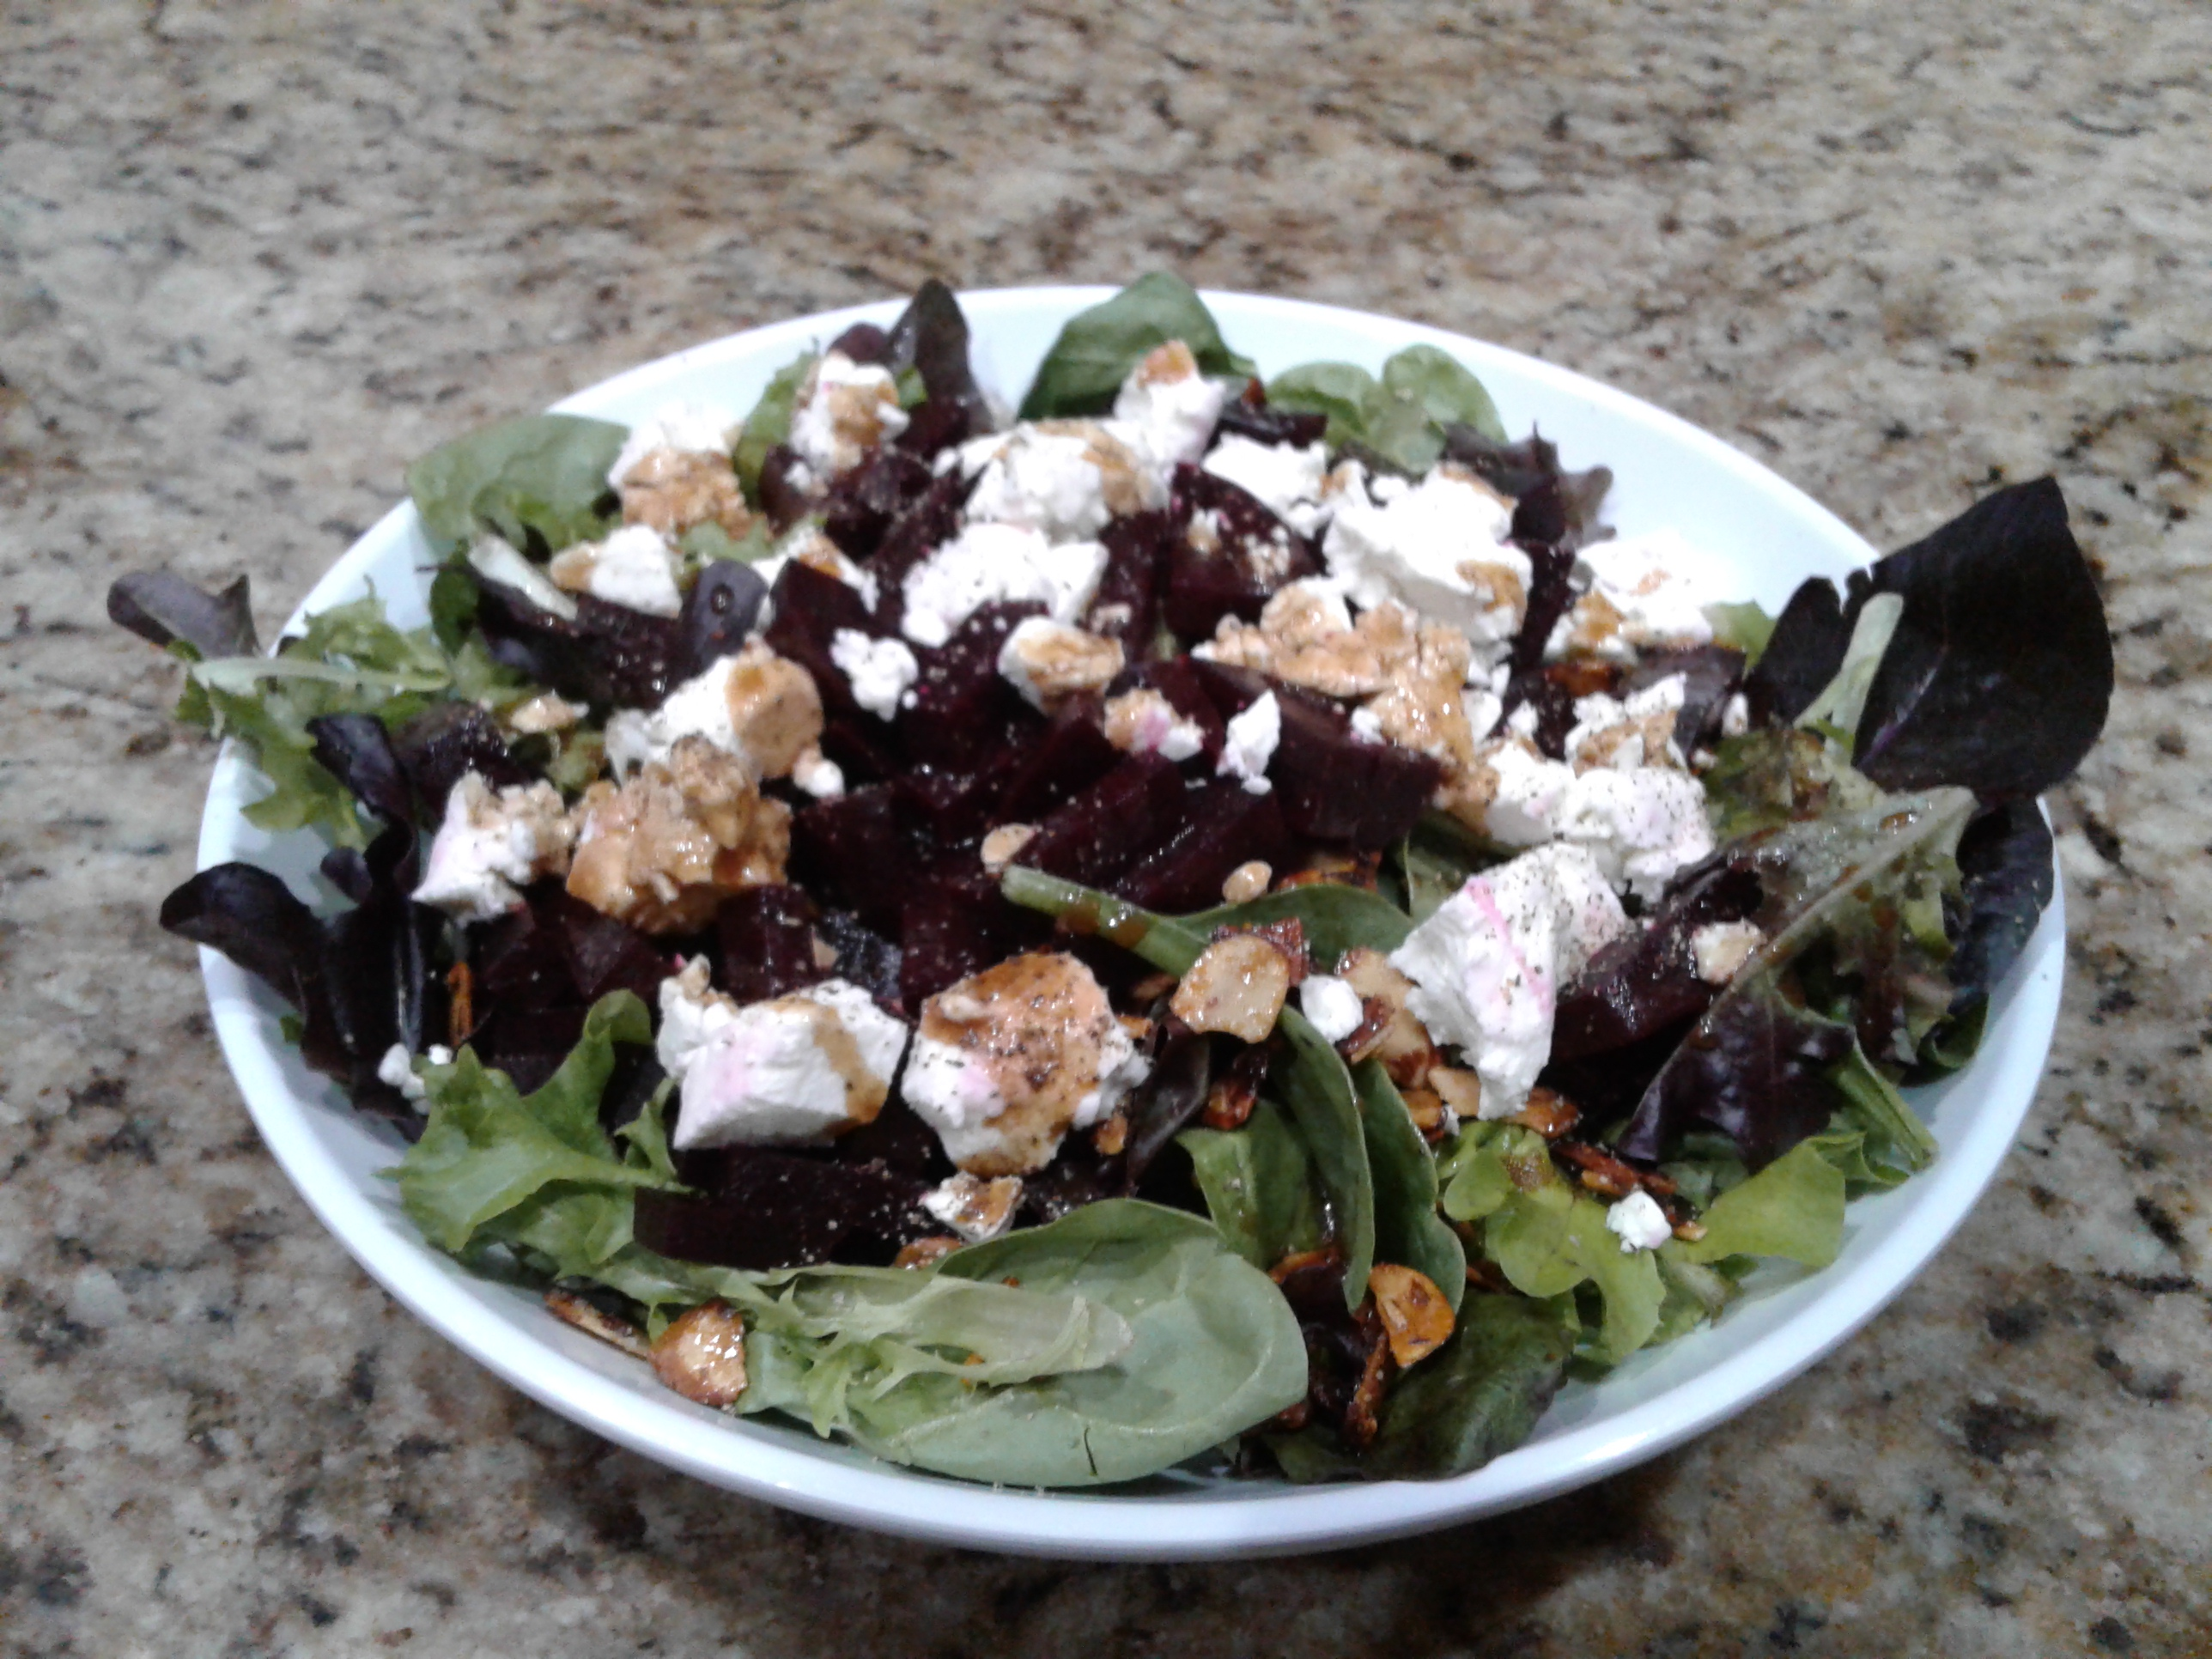 Roasted Beets with Goat Cheese and Walnuts Tracey Ferrari Posner